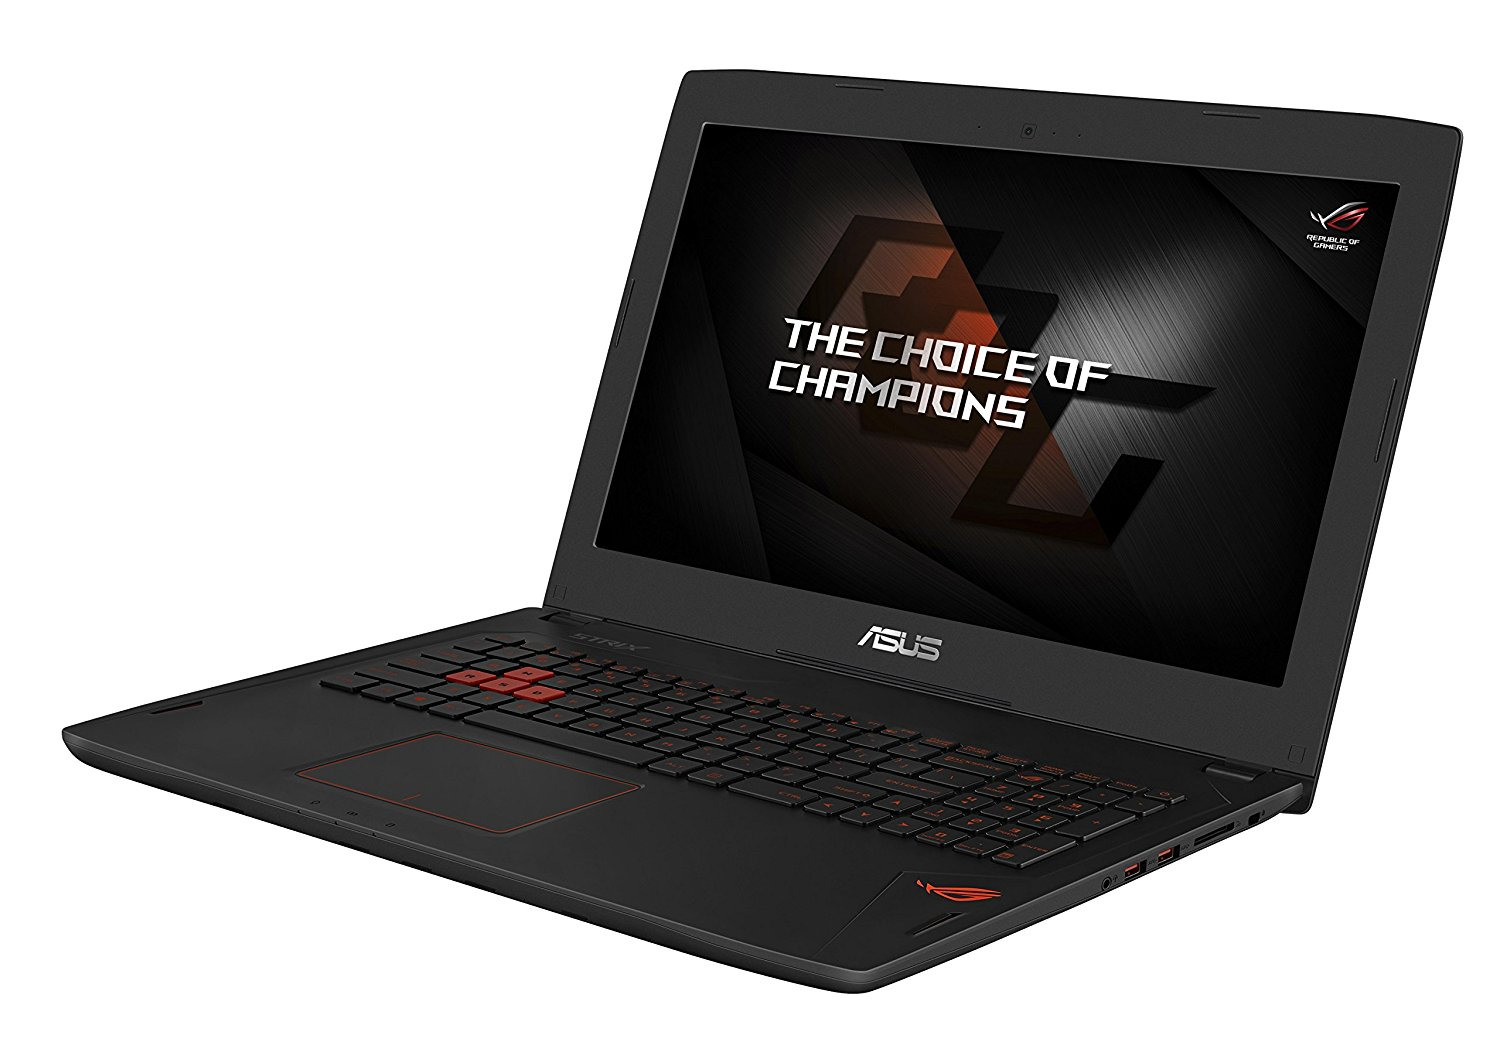 Beendet – 1.199€  Asus ROG GL502VS-FY043T 39,6 cm (15,6 Zoll mattes FHD, IPS G-Sync) Gaming Notebook (Intel Core i7-6700HQ, 8GB RAM, 512GB SSD, 1TB HDD, GeForce GTX 1070, Win 10) schwarz